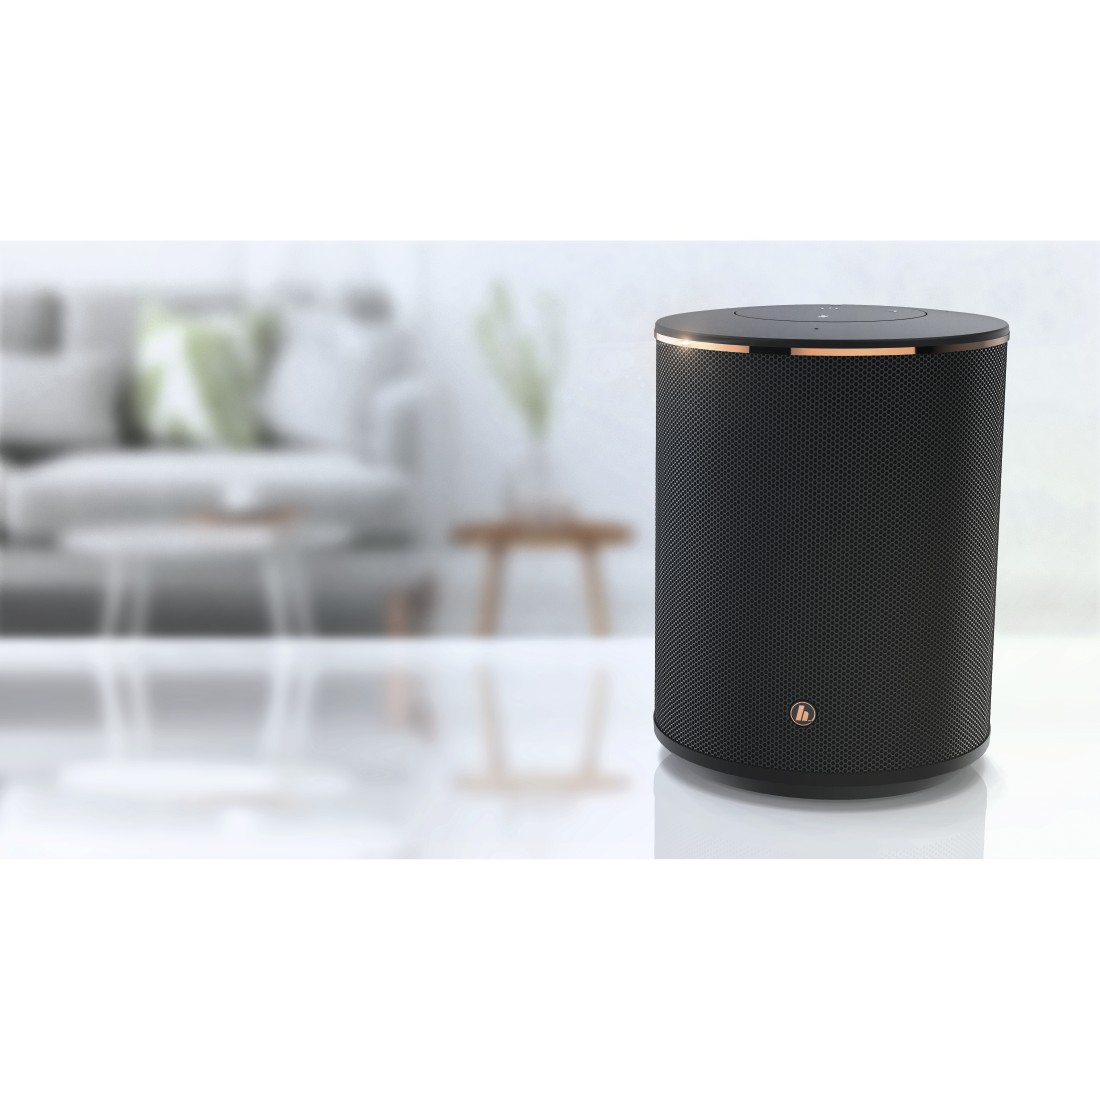 "awx3 High-Res Appliance 3 - Hama, ""SIRIUM1400ABT"" Smart-Speaker, Alexa/Bluetooth®"